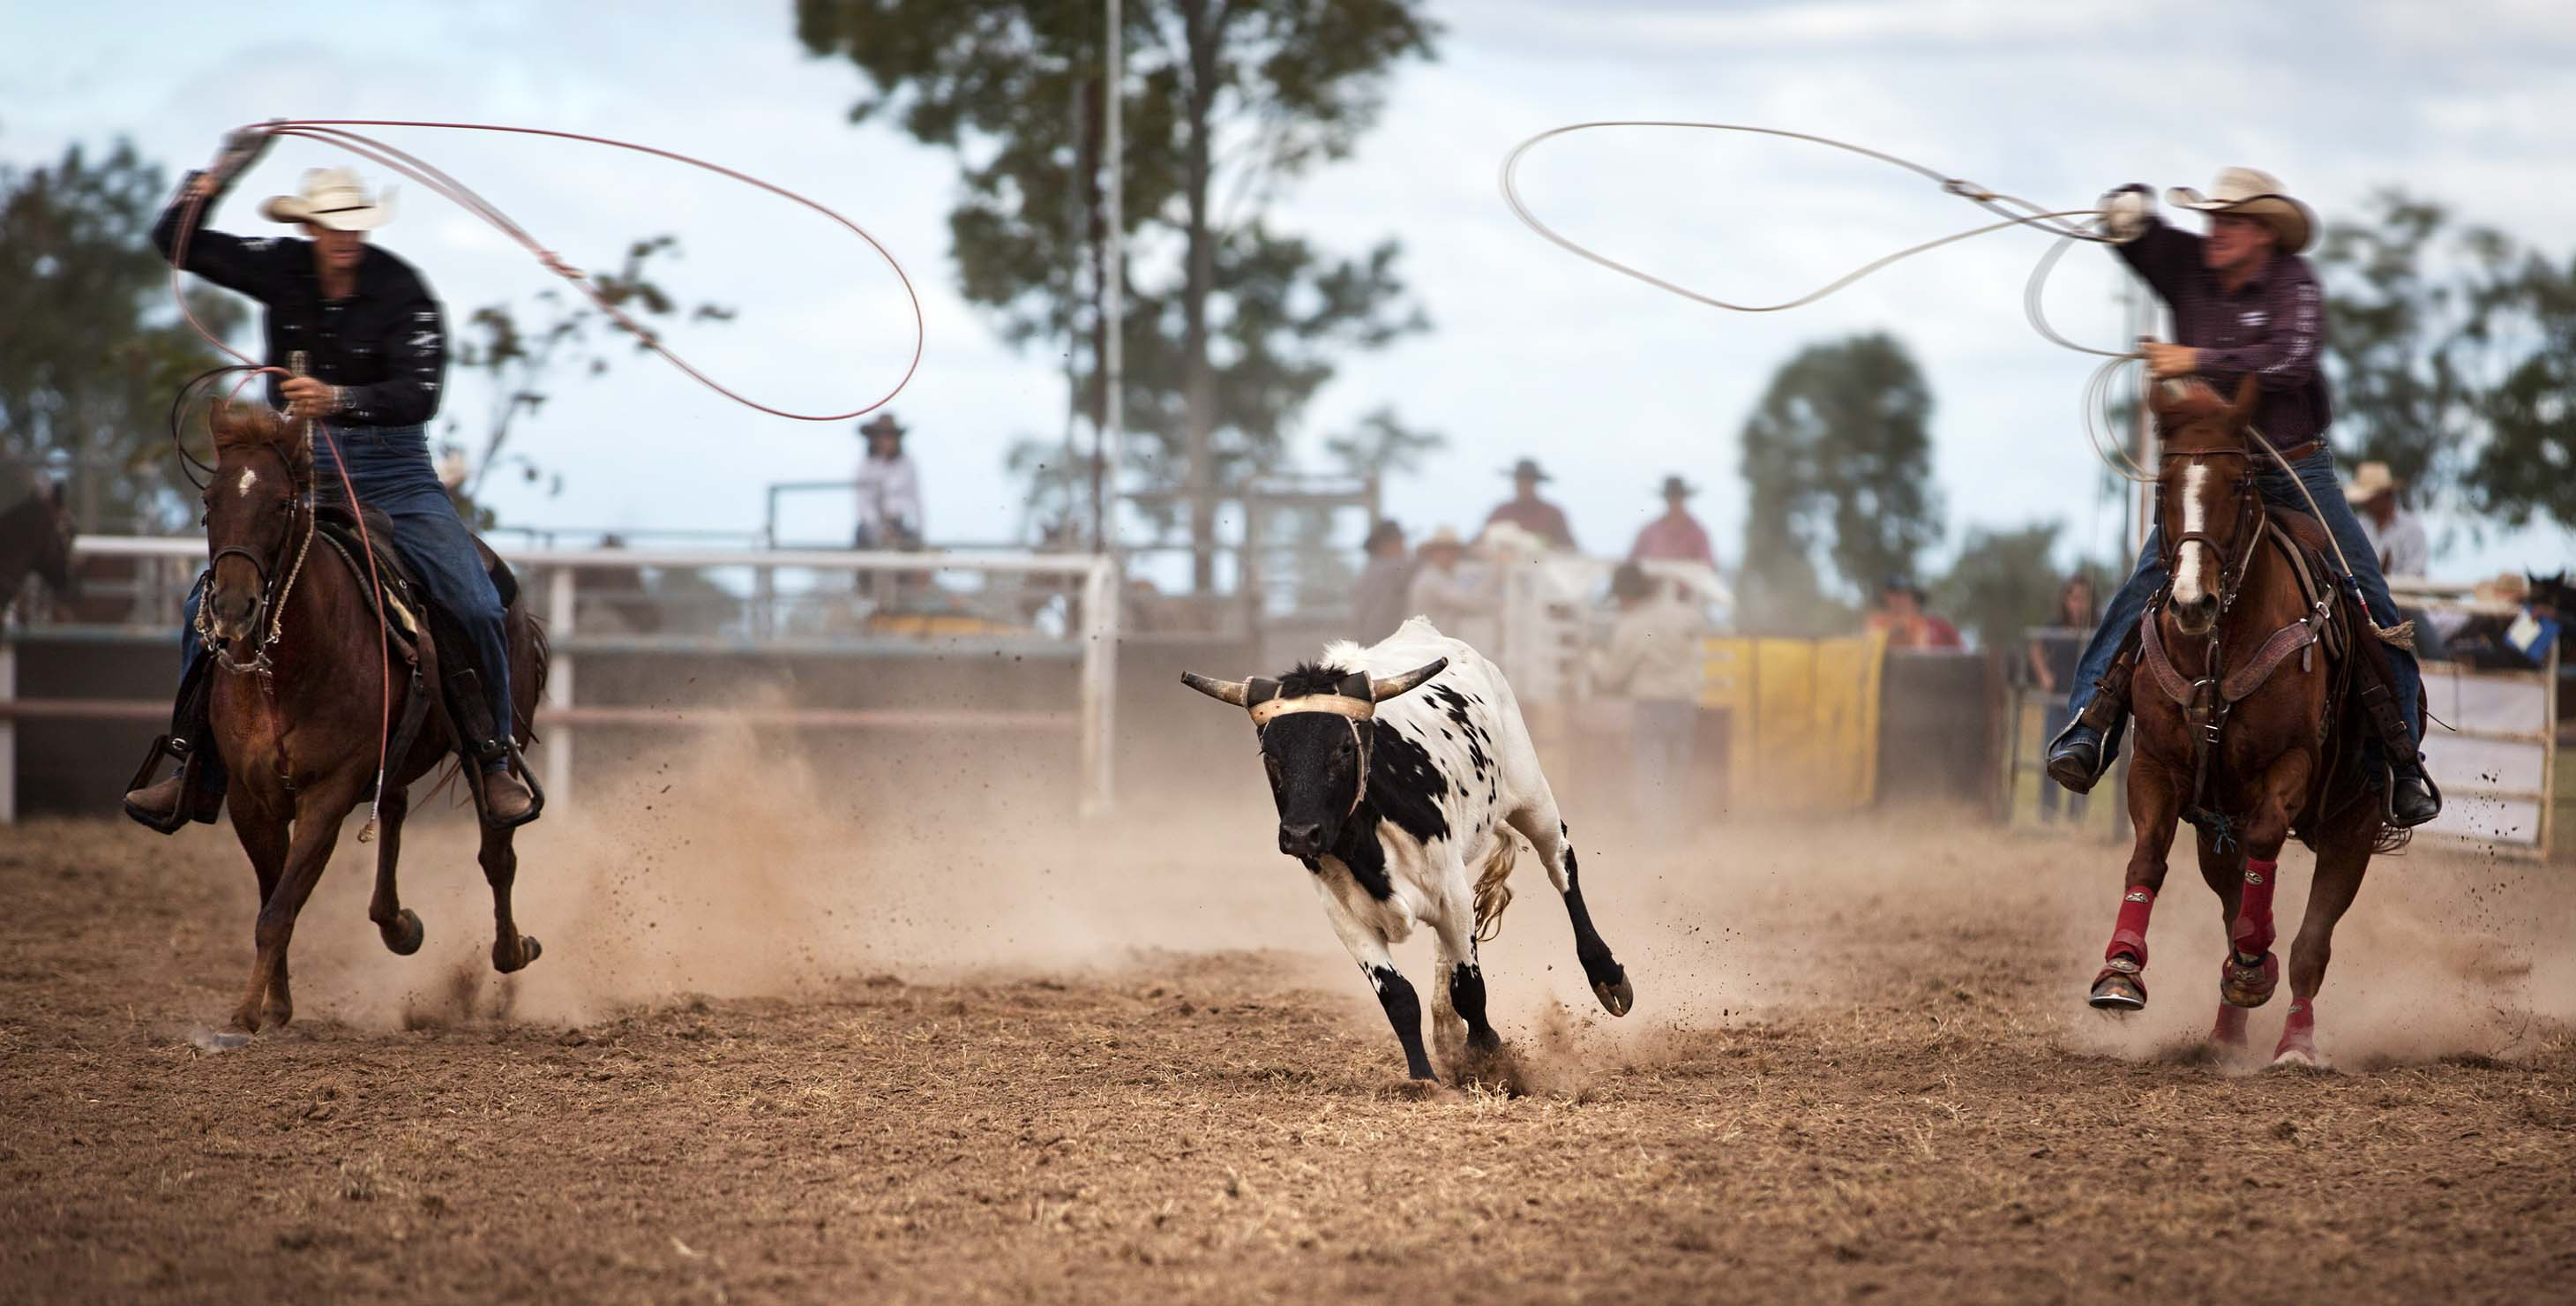 Two cowboys try to lasso a bull at a rodeo